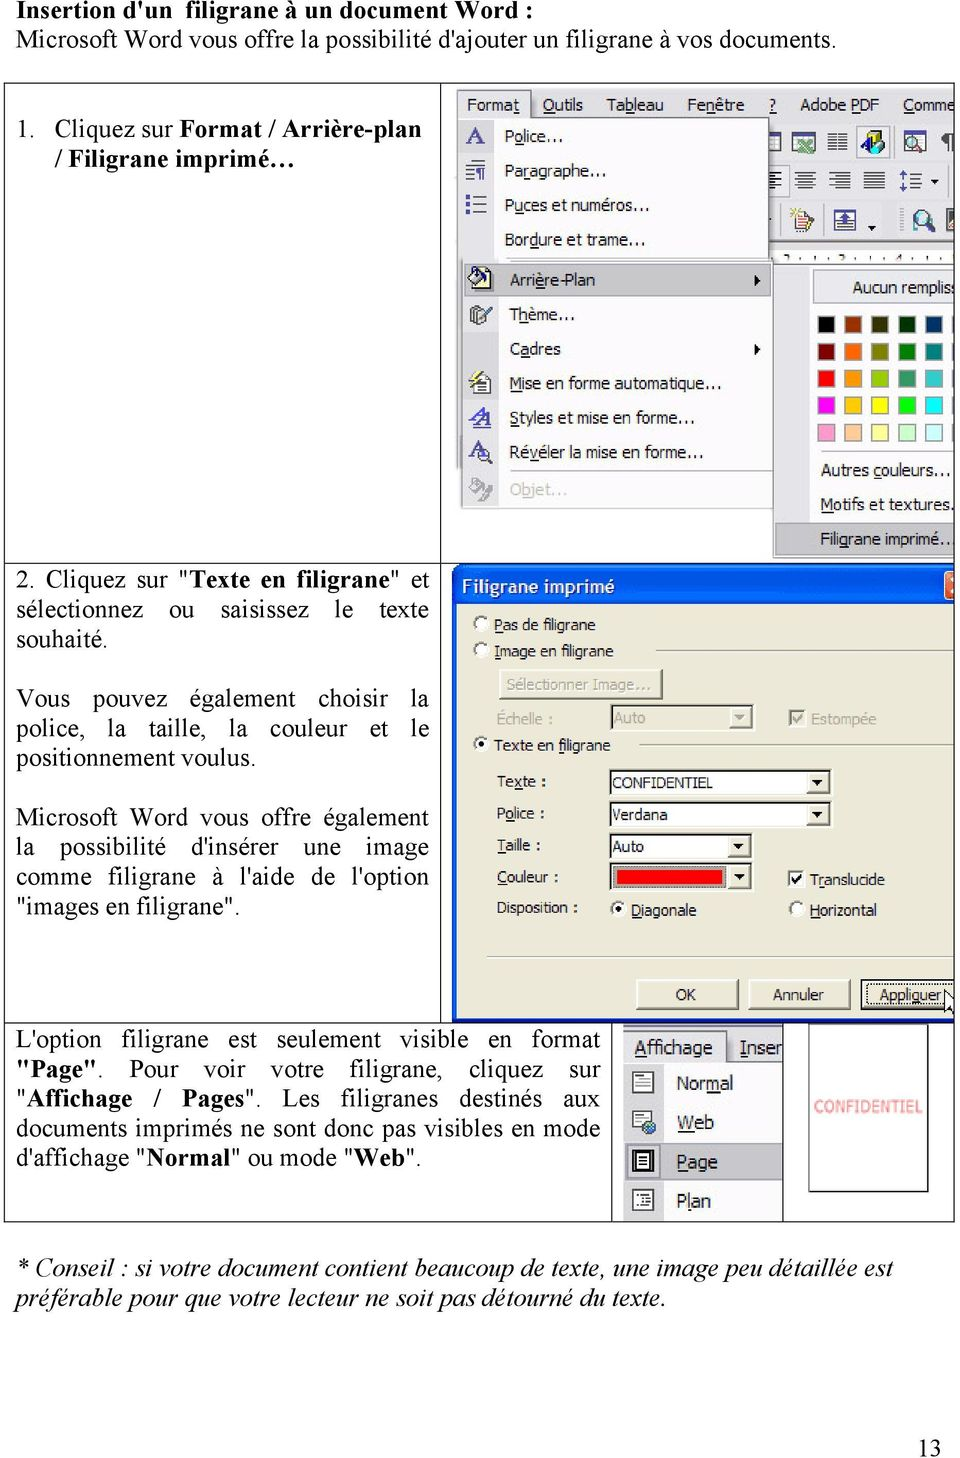 "Microsoft Word vous offre également la possibilité d'insérer une image comme filigrane à l'aide de l'option ""images en filigrane"". L'option filigrane est seulement visible en format ""Page""."